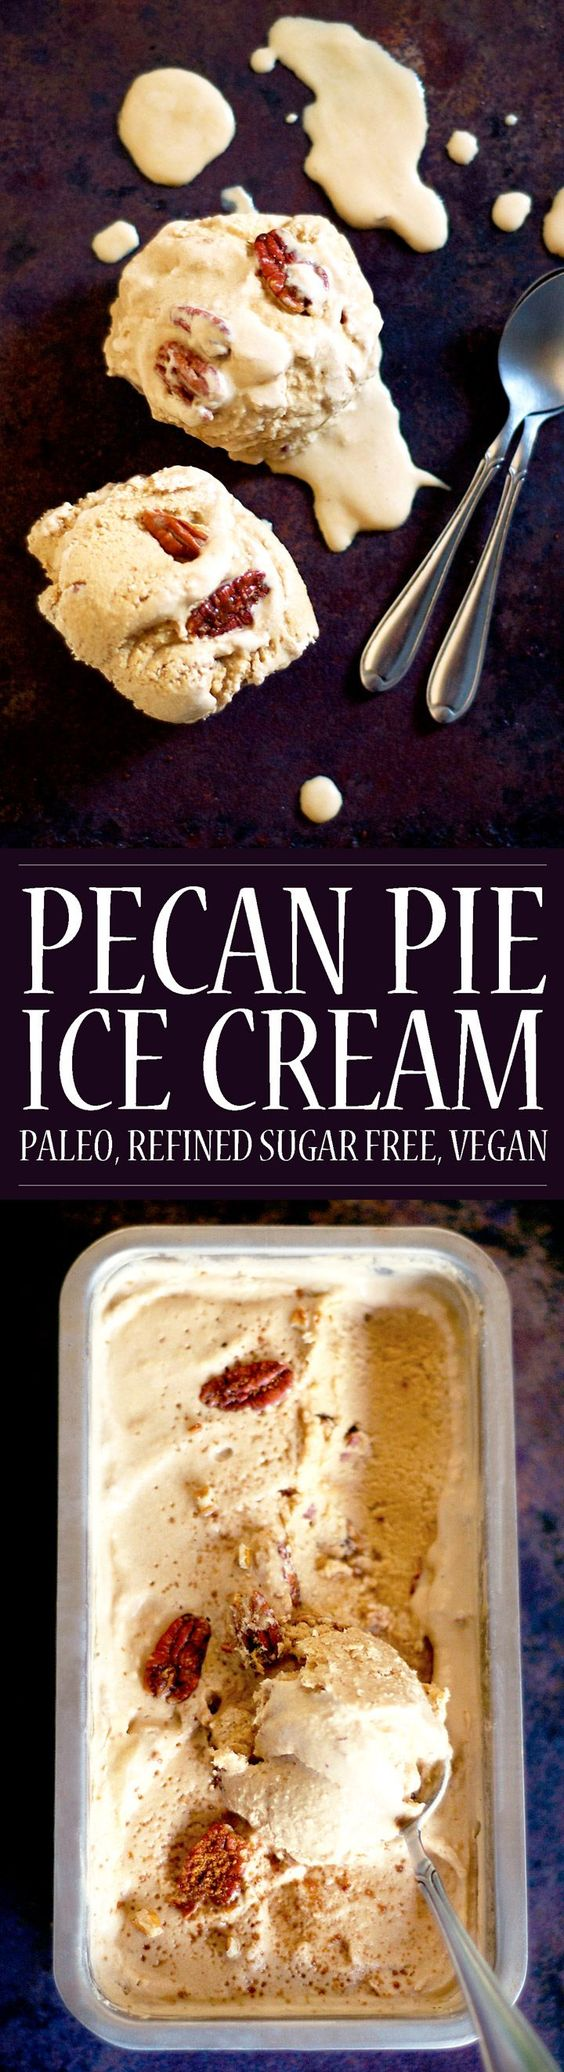 Pecan Pie Ice Cream! Vegan, paleo and refined sugar free! A healthier treat for Thanksgiving or otherwise! Super easy with or without an ice cream maker.